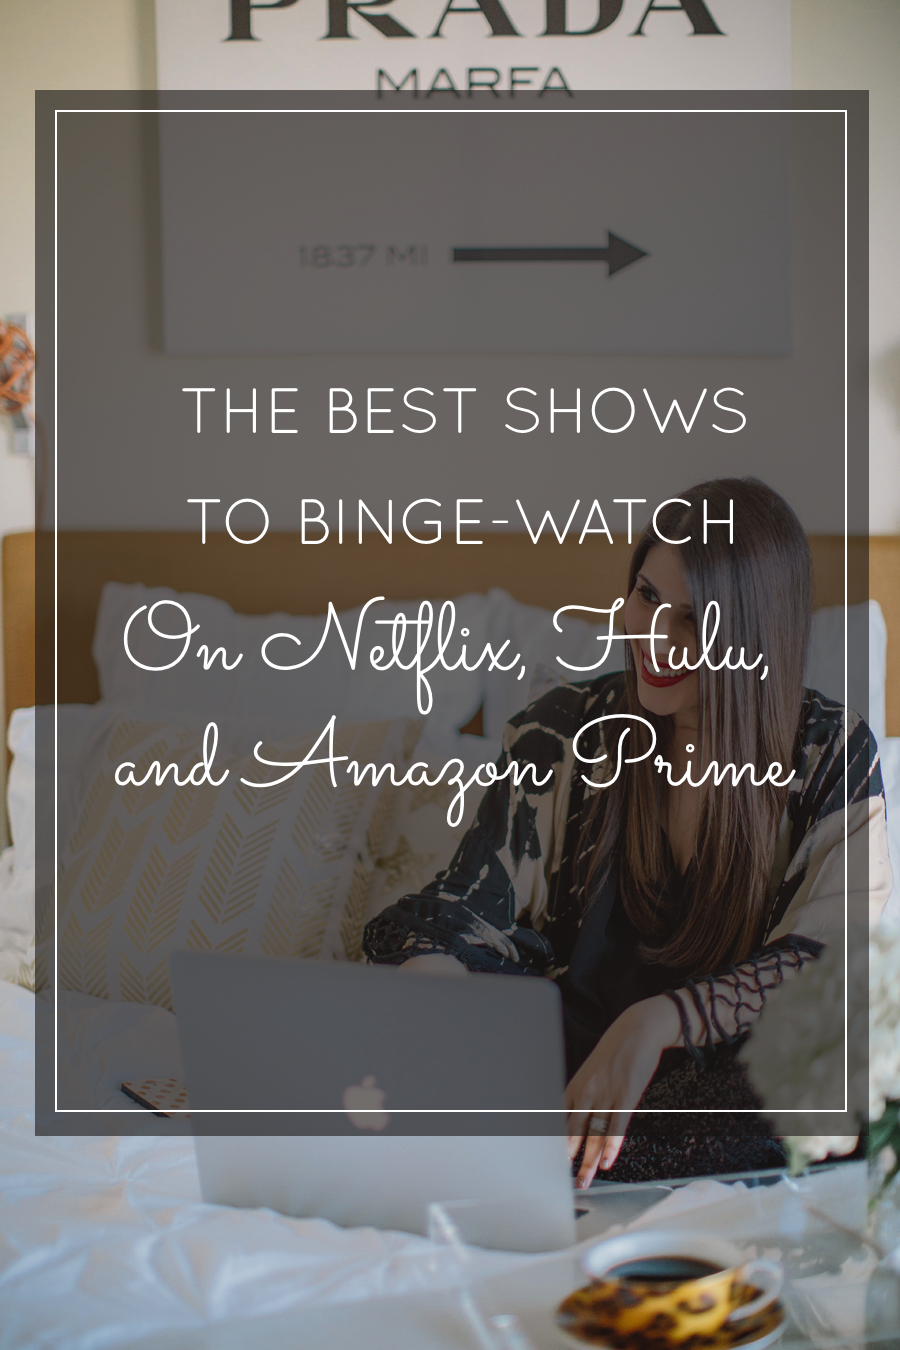 The Best Shows to Binge-Watch on Netflix, Hulu, and Amazon Prime Streaming (This list is HUGE!) - Updated January 2018 | glitterinc.com | @glitterinc